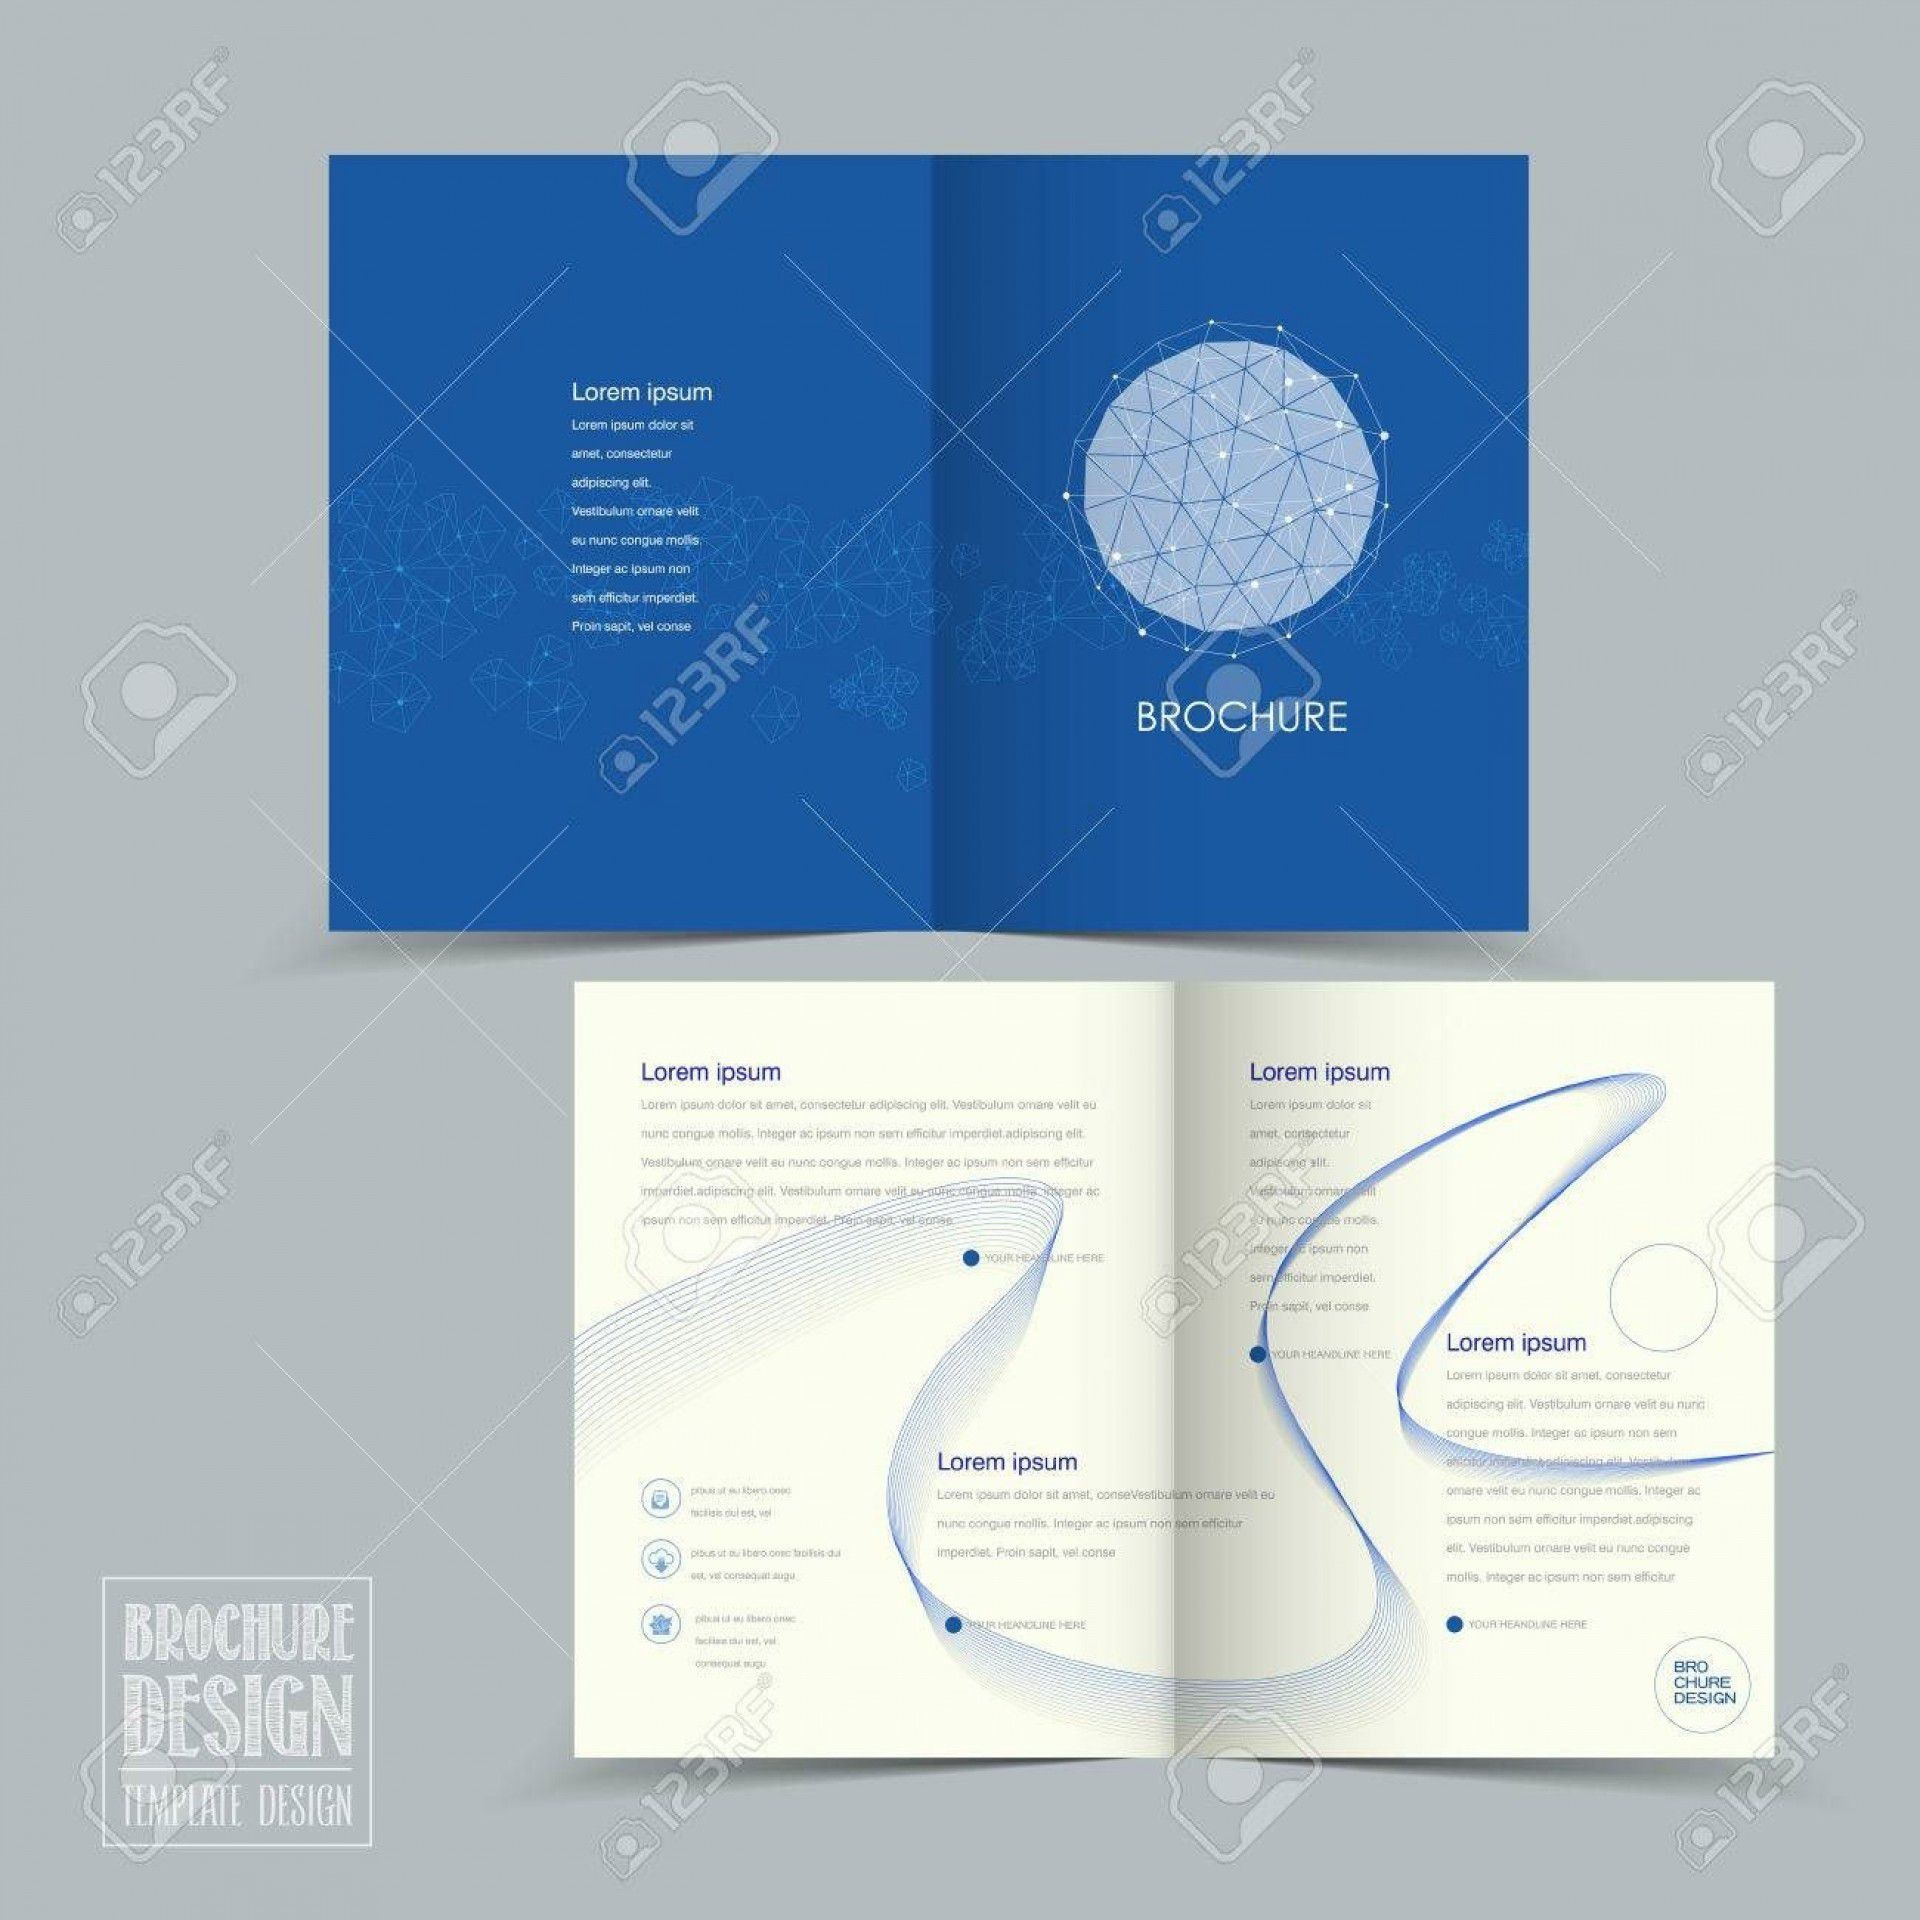 000 Awesome Half Fold Brochure Template Free Highest Quality  Blank Microsoft Word1920